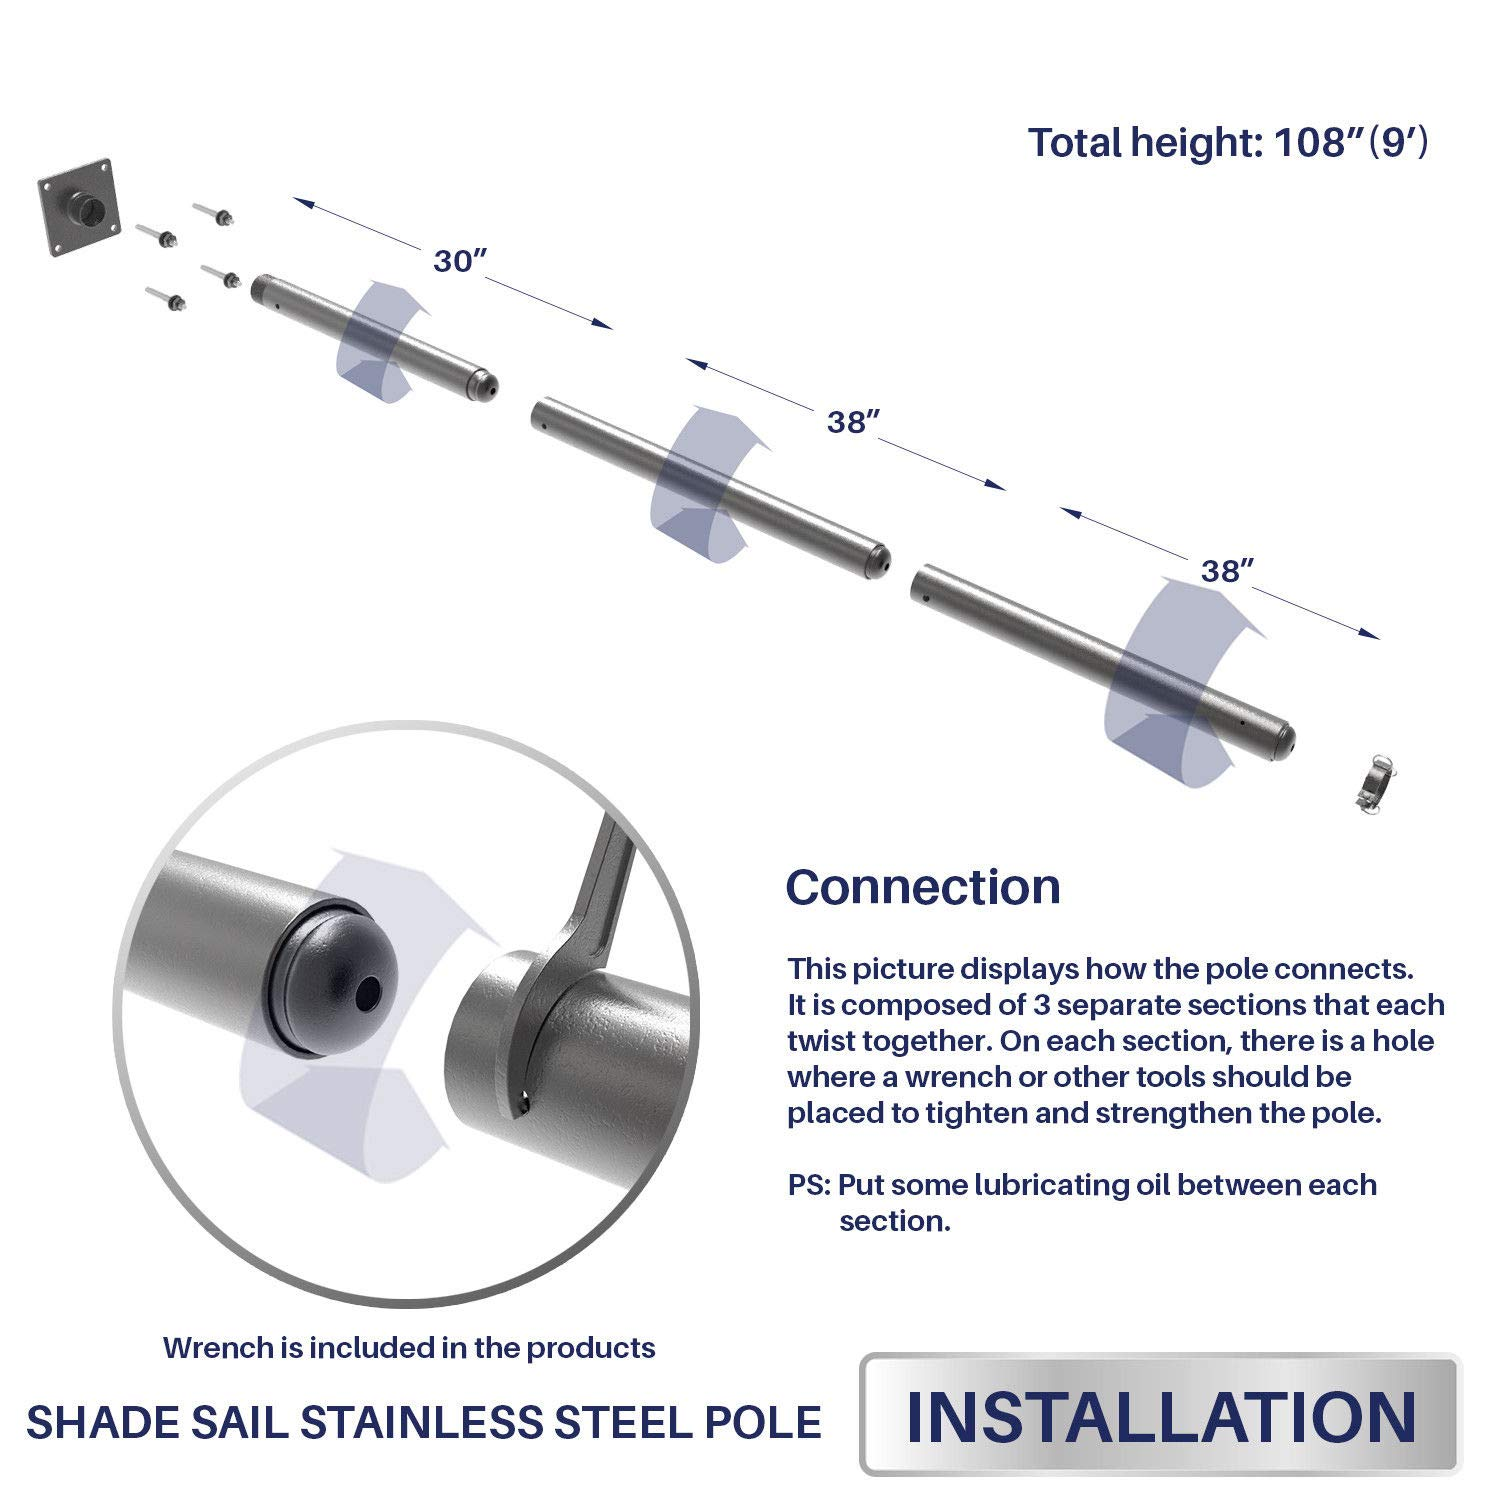 Windscreen4less 108'' Sun Shade Sail Pole,Knitted Shade Sail Stand Post,Awning Support Poles,Canopy Support Poles,Strengthen,Heavy-Duty Support-Steel - Gray by Windscreen4less (Image #4)